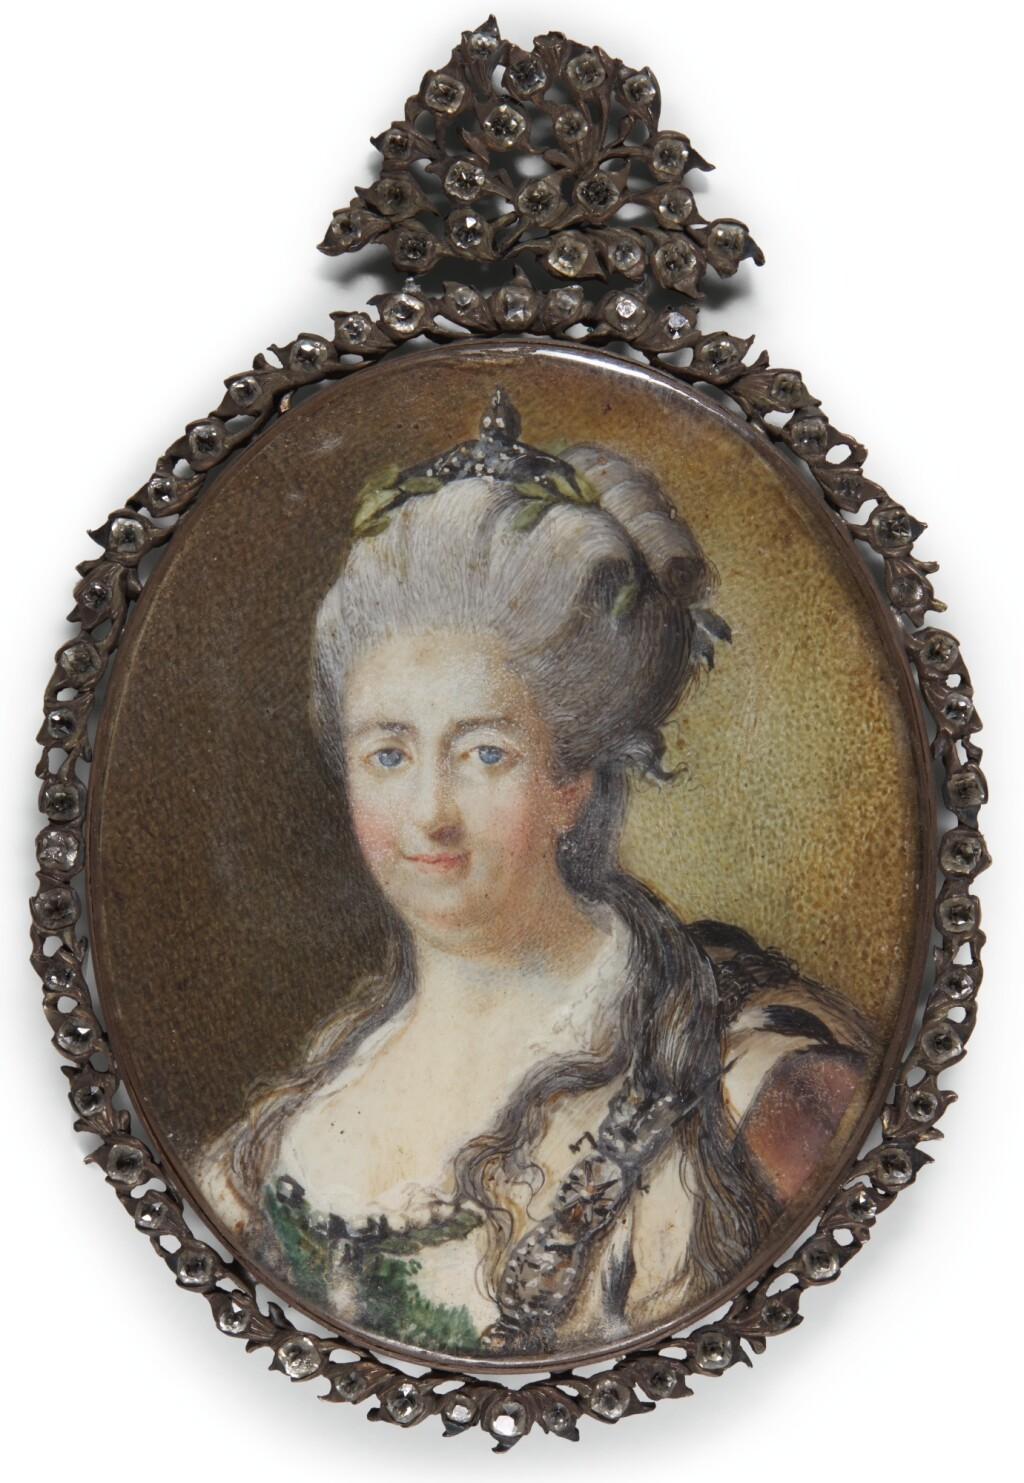 AFTER JOHANN BAPTIST LAMPI, THE ELDER | Portrait of Catharine, Empress of Russia (1729-1796)